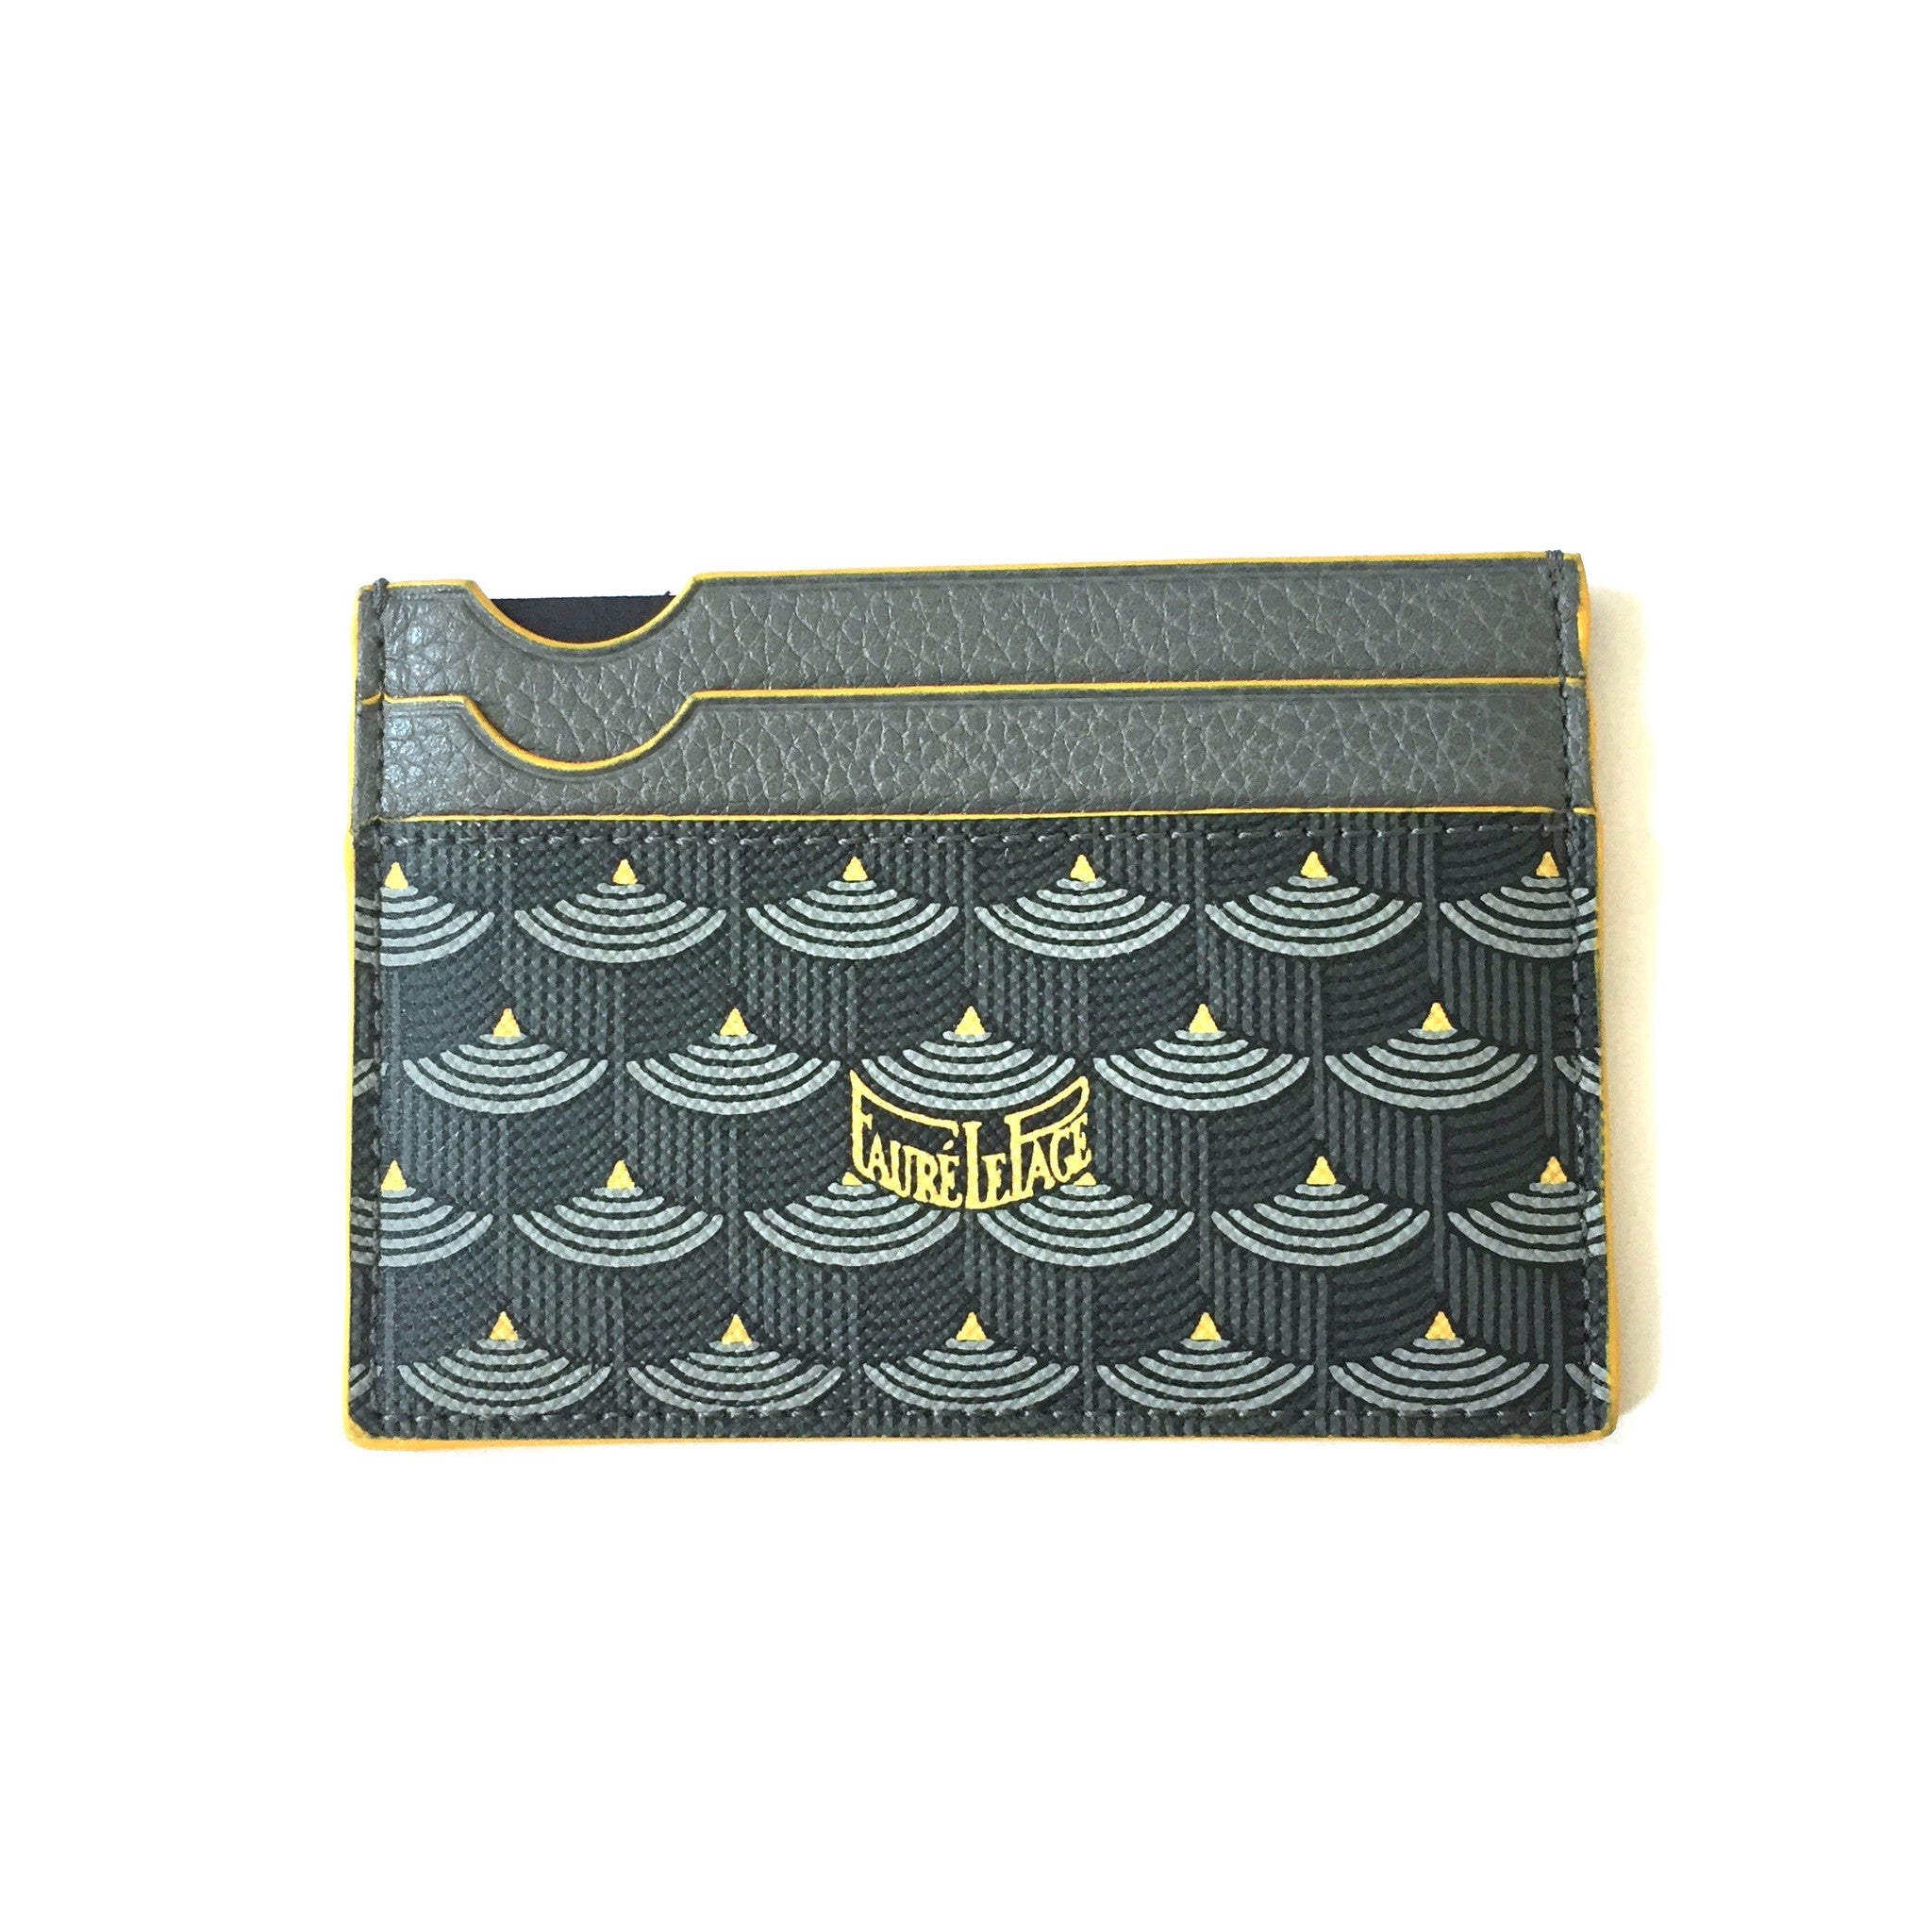 Faure Le Page - Steel Gray / Yellow 4CC Card Holder